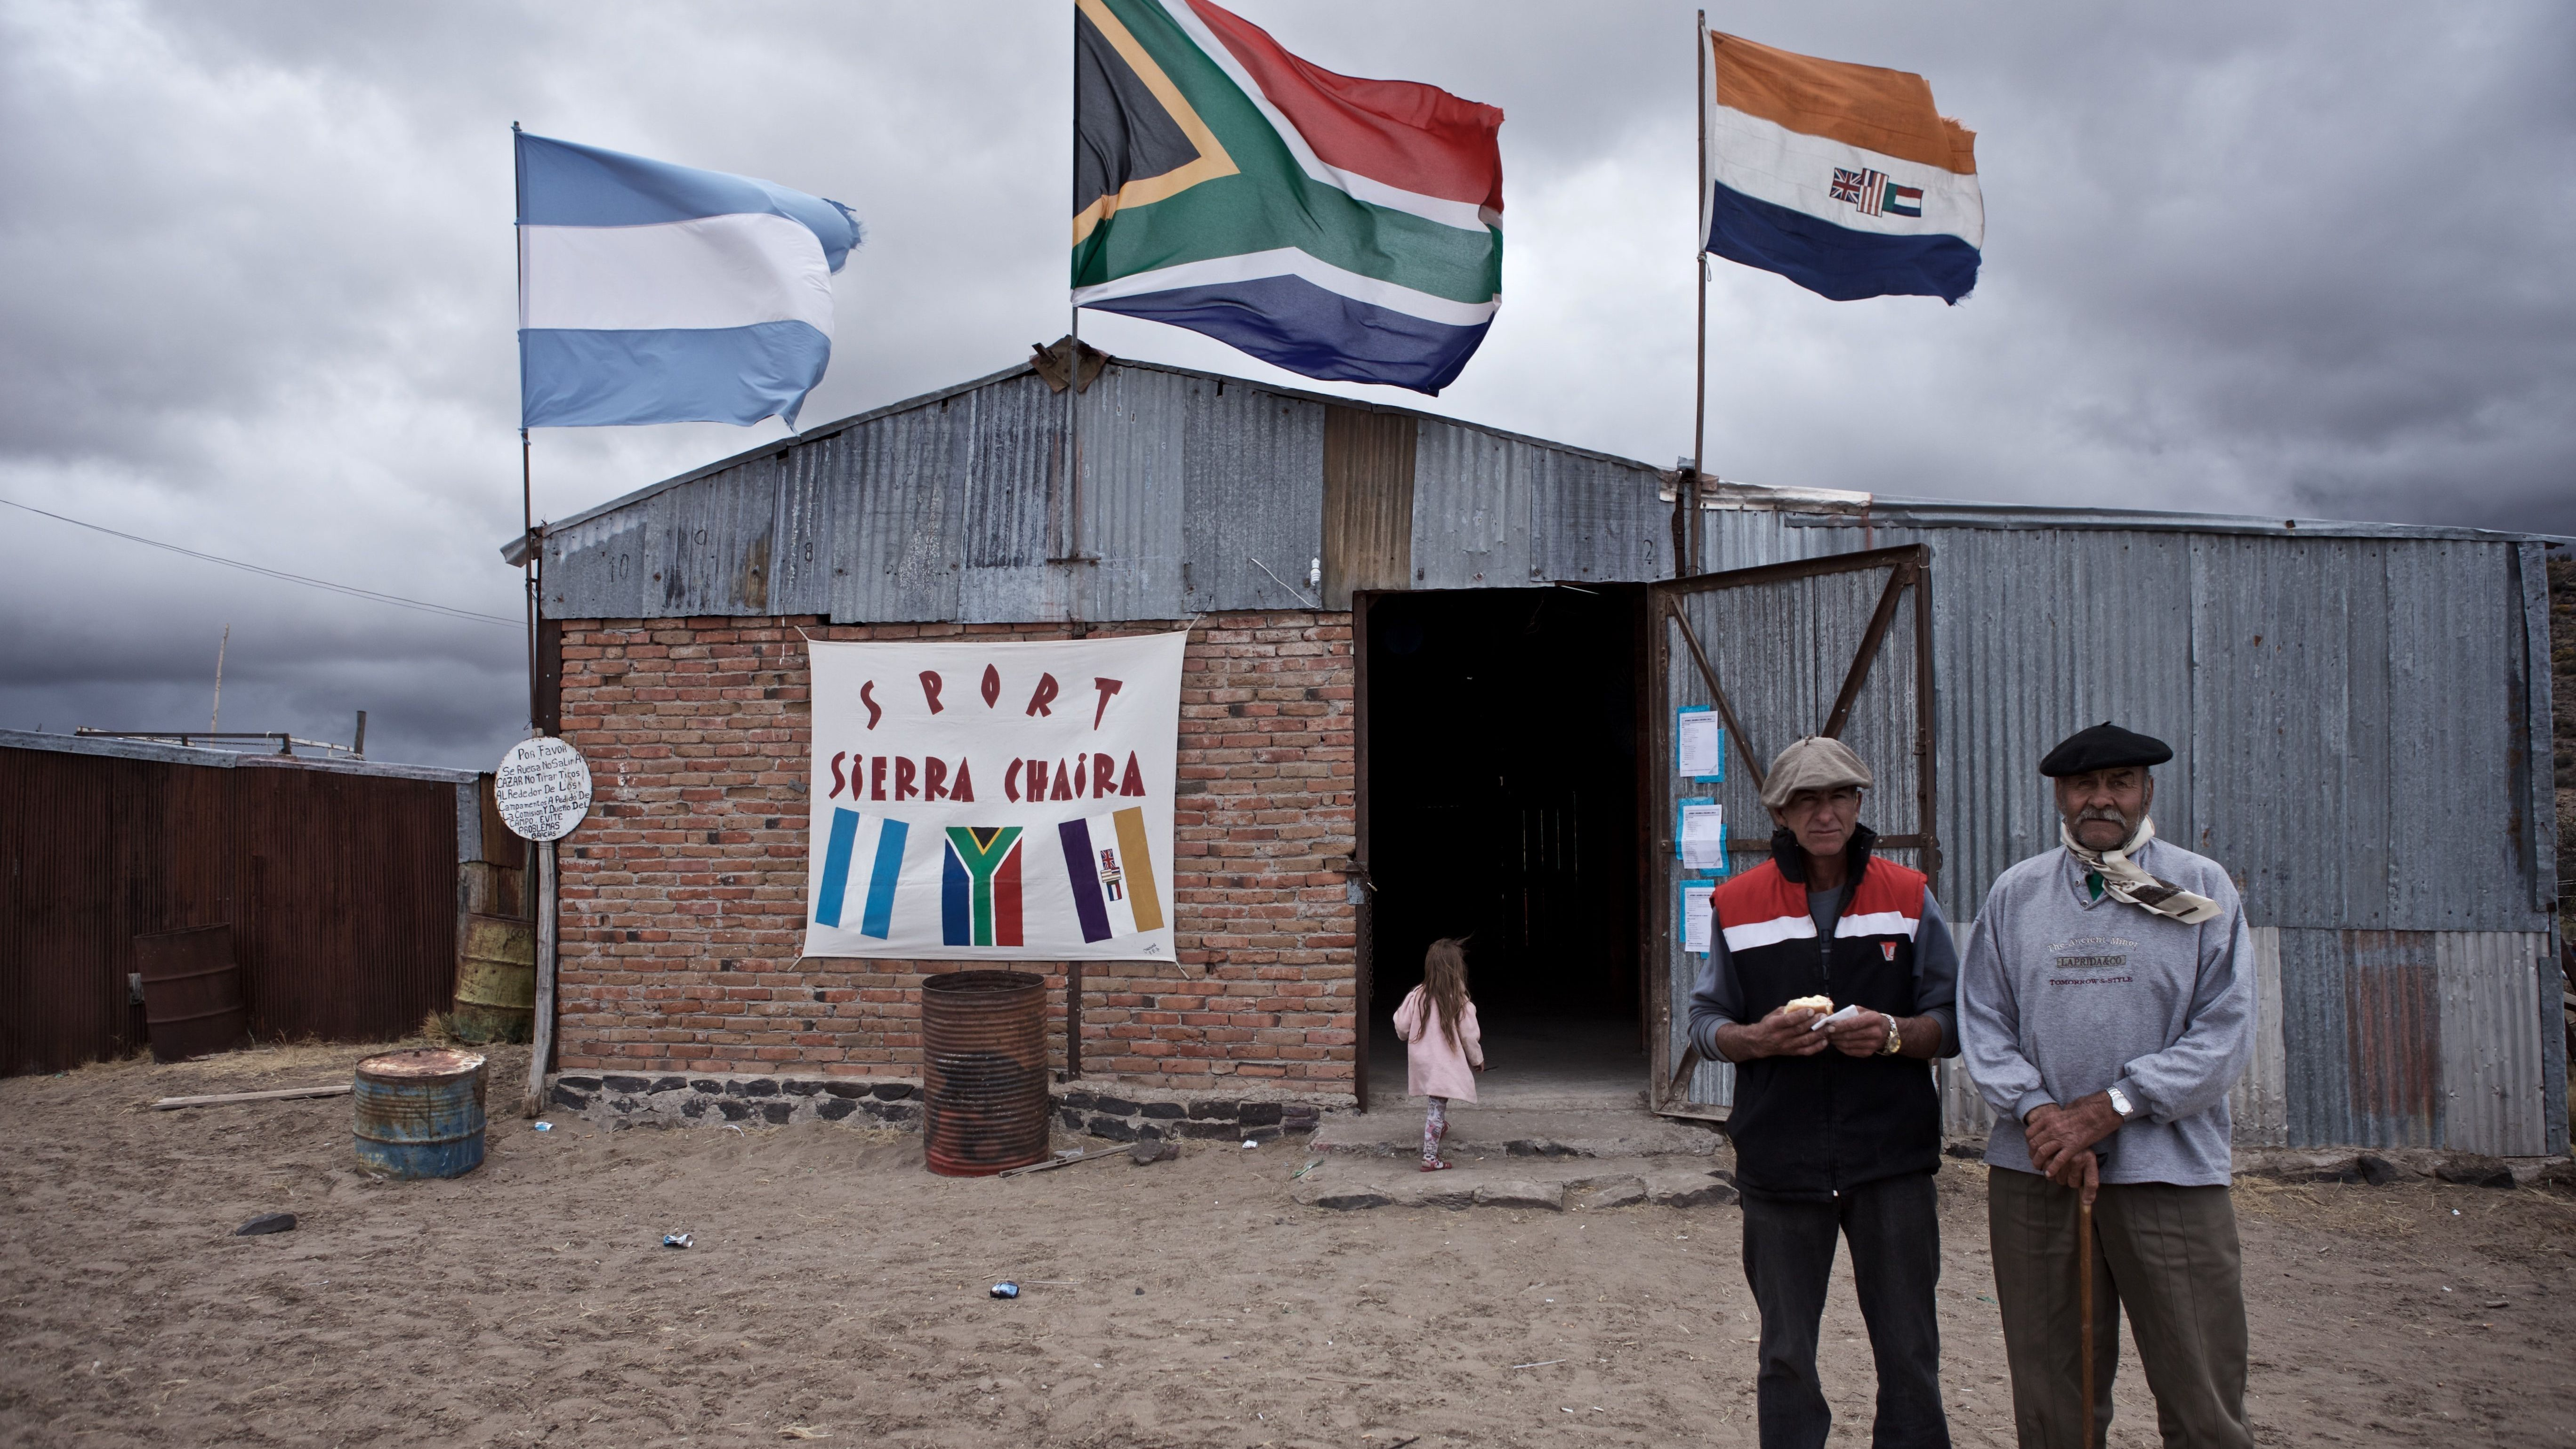 An almost-extinct Afrikaans dialect is making an unlikely comeback in Argentina